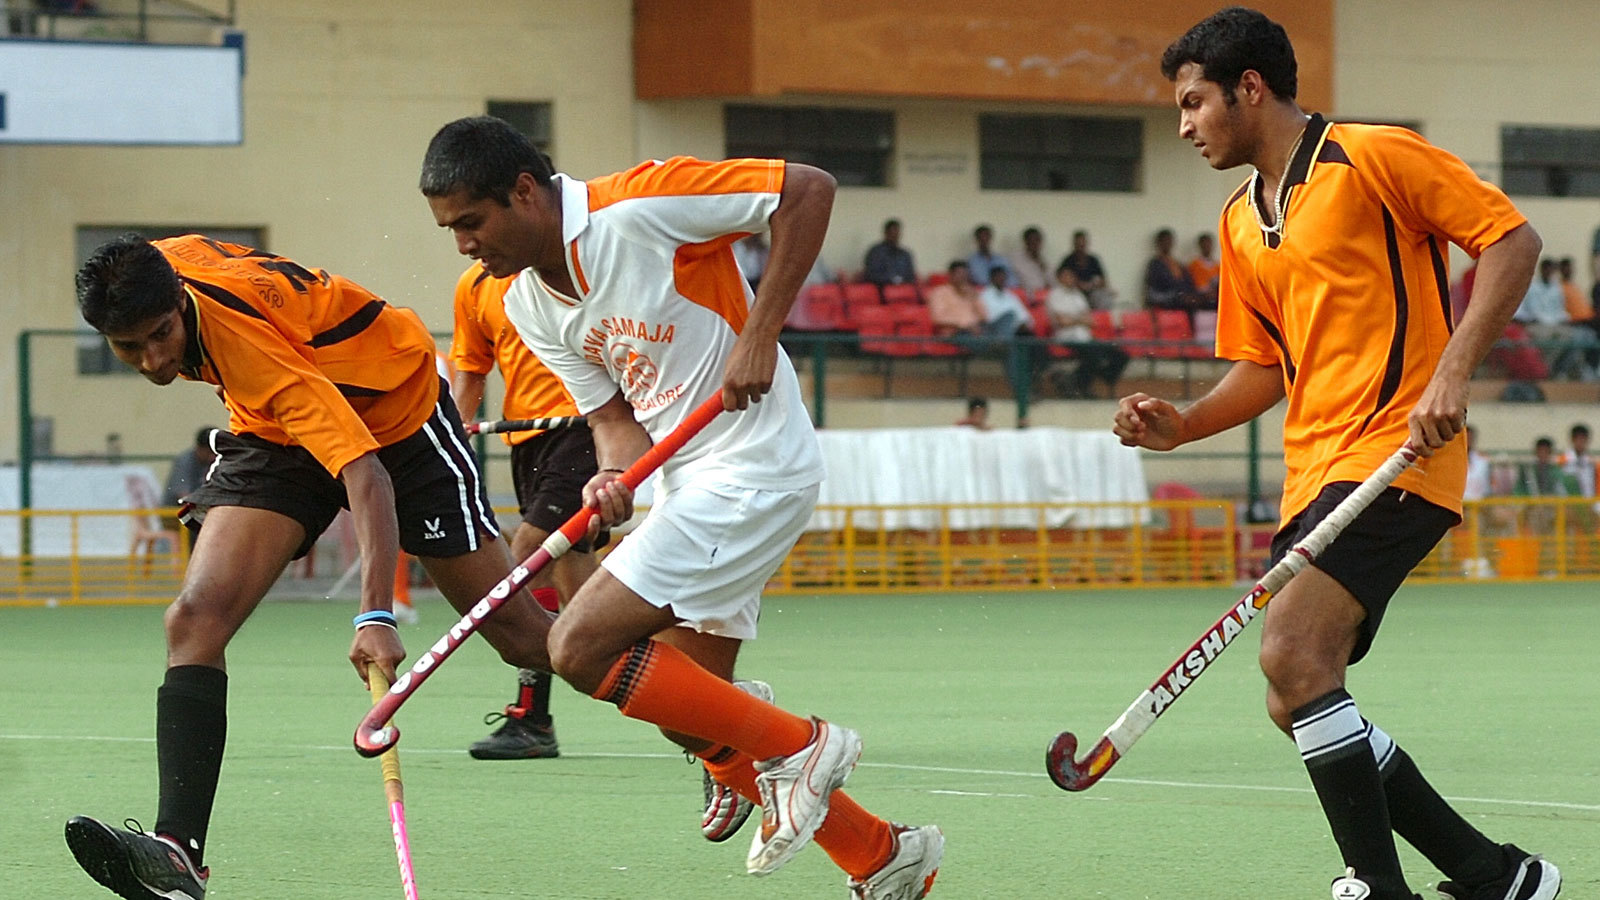 Hockey is a favourite with Kodavas with many from the community having played for India